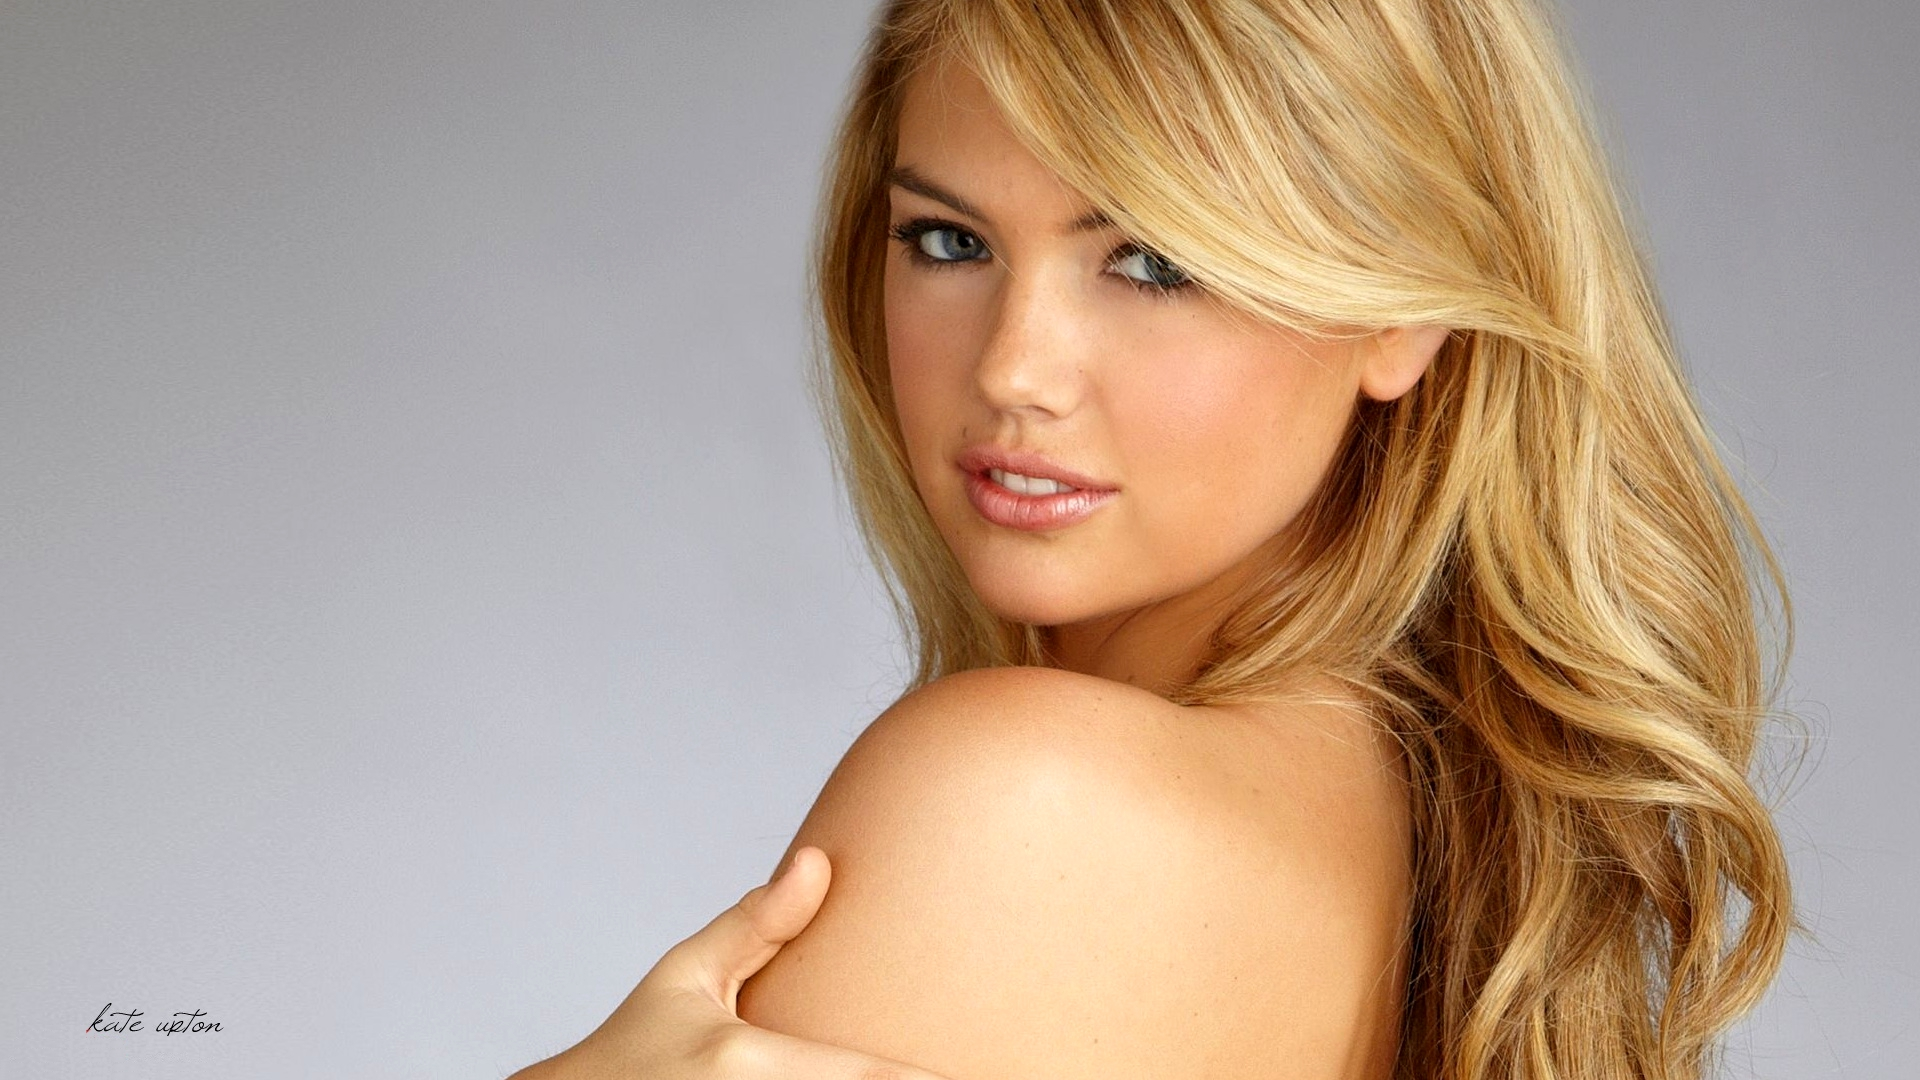 Kate Upton Latest Wallpaper